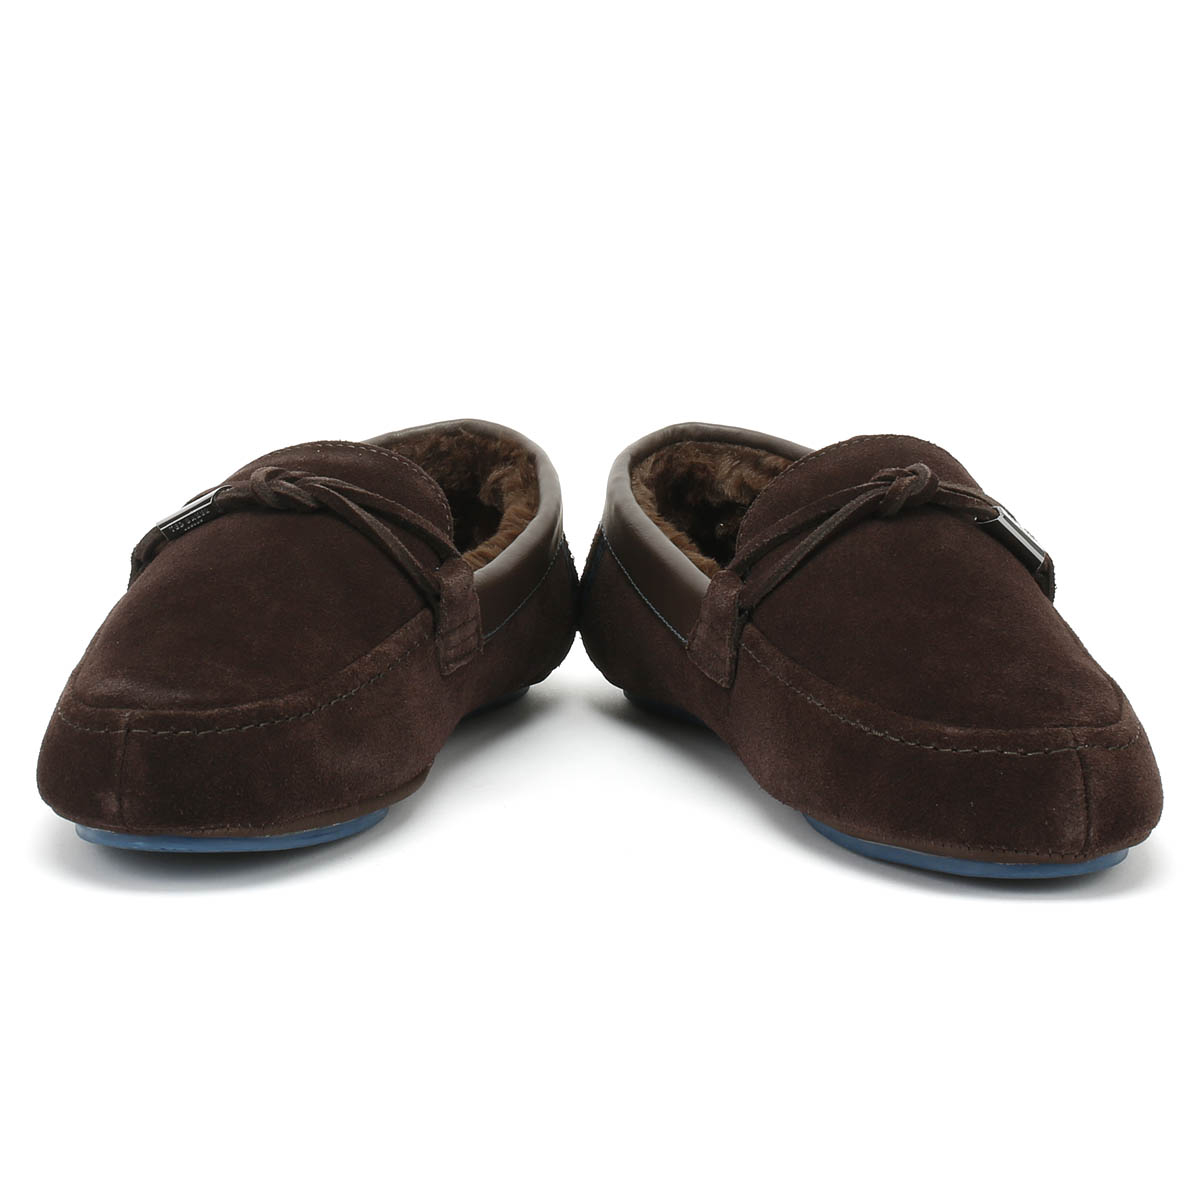 Ted Baker  Herren Braun Casual Valcent Slippers Suede Casual Braun Home Schuhes 2fc3d8